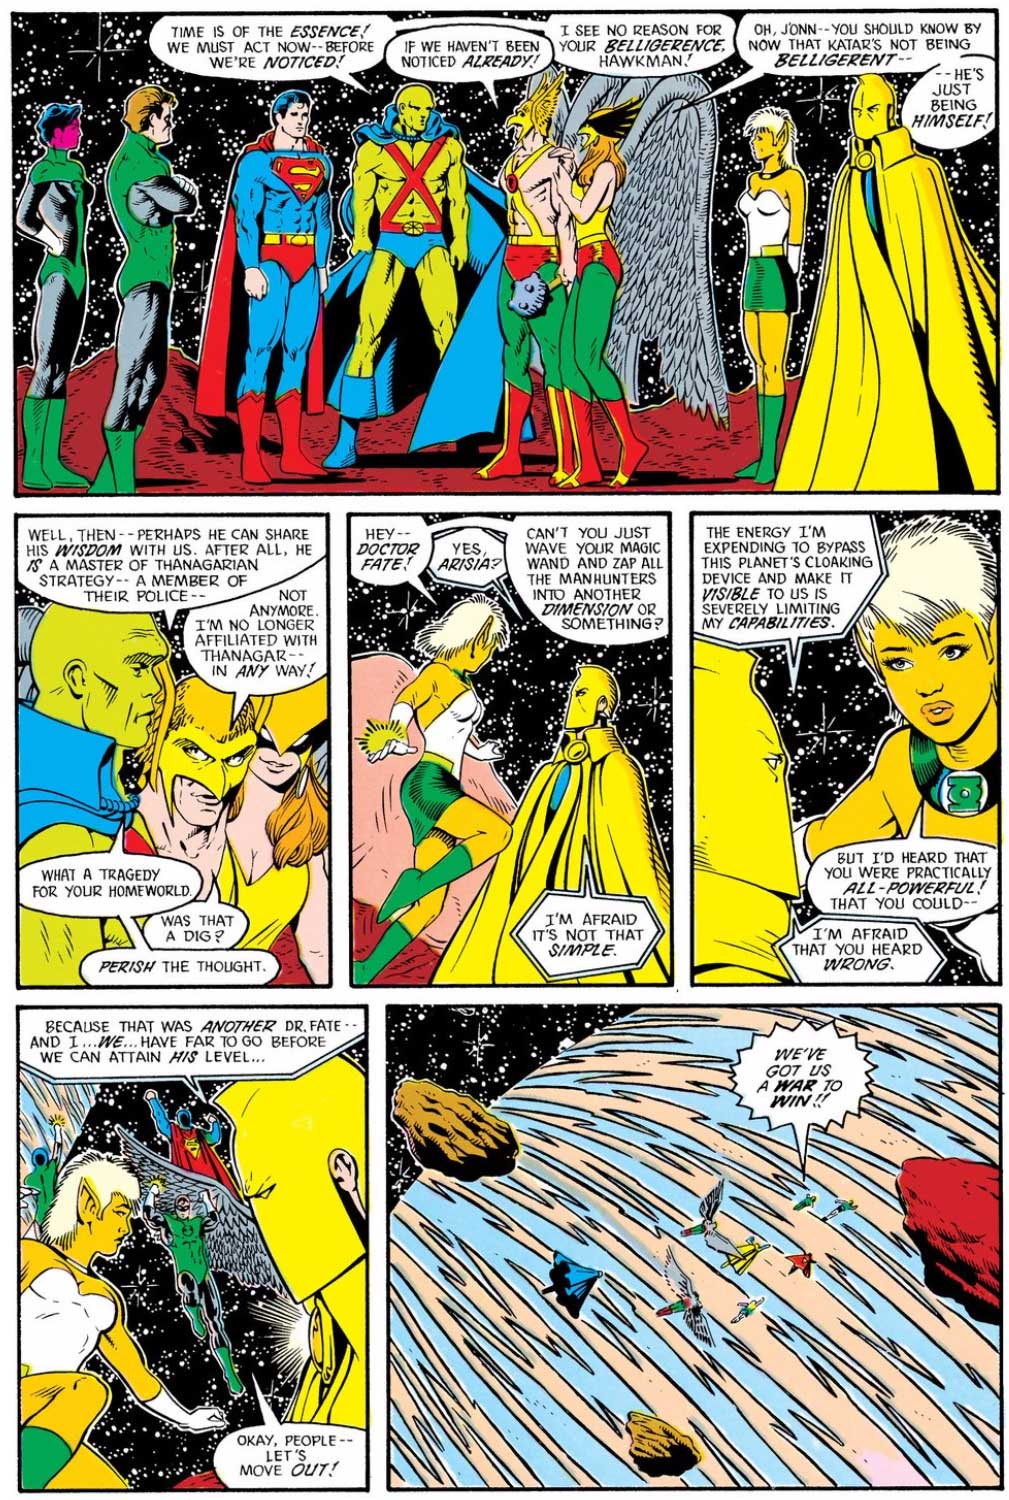 Justice League International #10 by Keith Giffen, J.M. DeMatteis, and Kevin Maguire